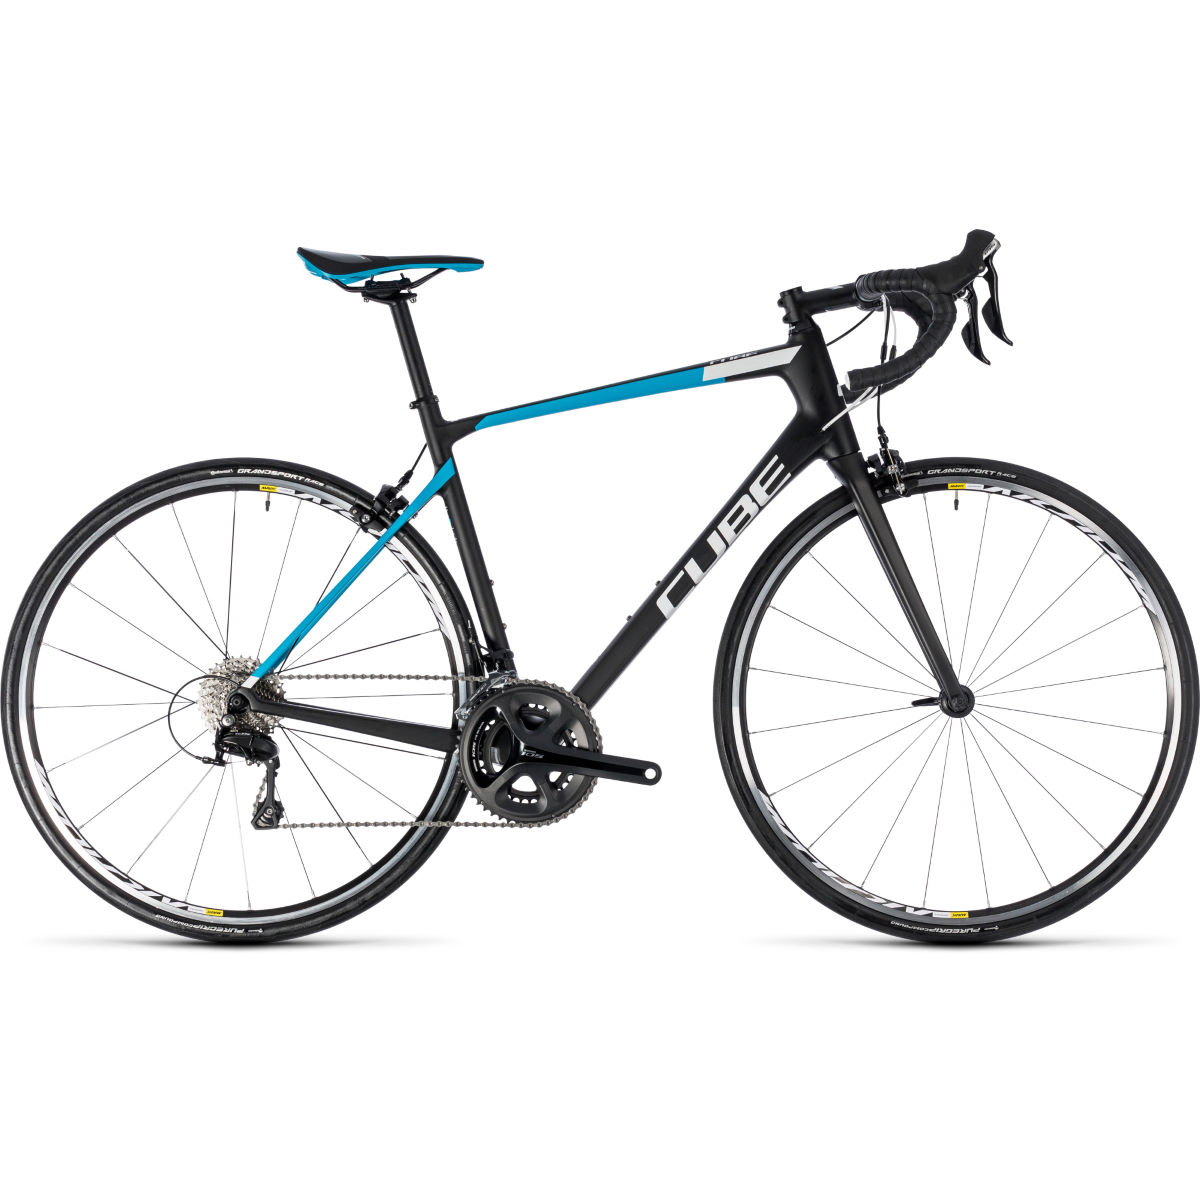 Vélo de route Cube Attain GTC Pro - 53cm Stock Bike Noir/Bleu